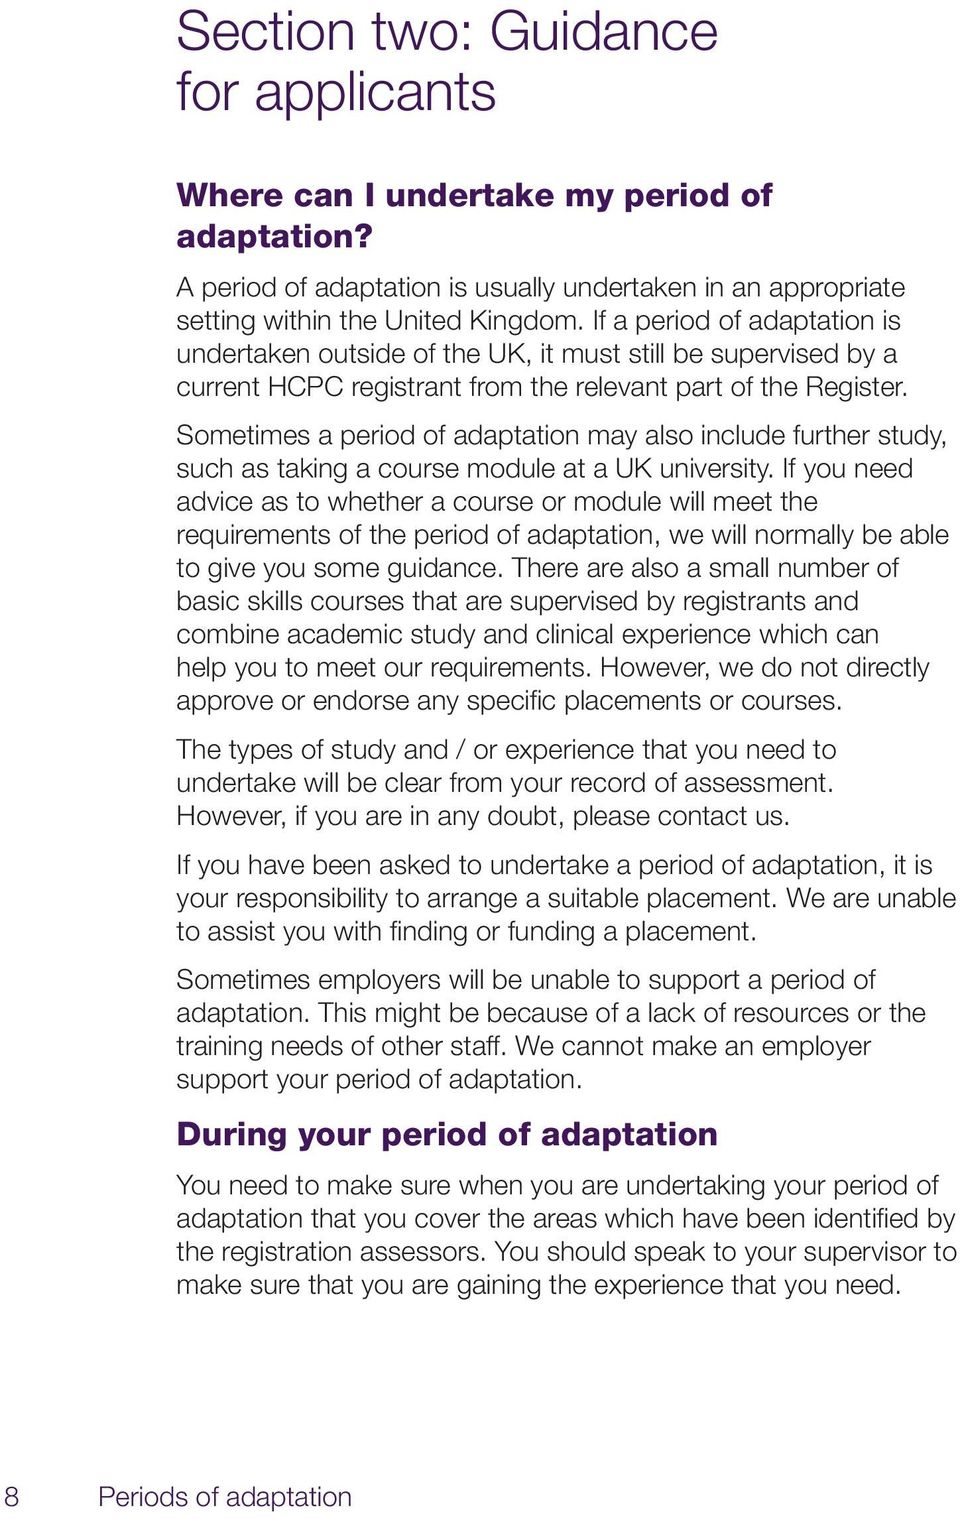 Sometimes a period of adaptation may also include further study, such as taking a course module at a UK university.